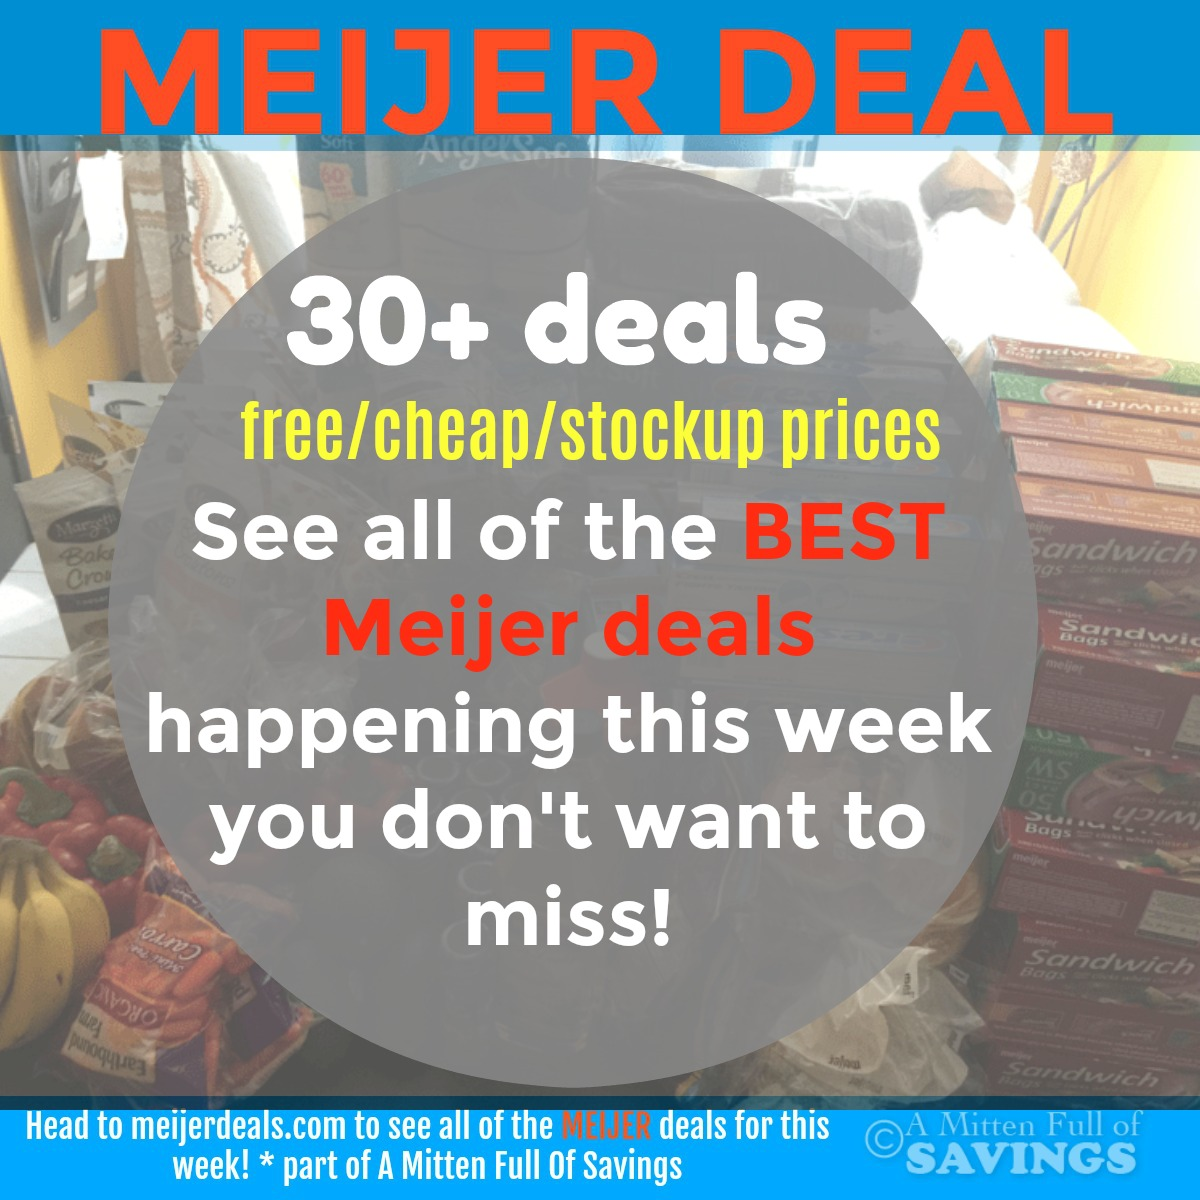 Today's best deals and coupons from across the web, vetted by our team of experts. We find ALL the best deals daily and handpick every single deal we post to ensure it is the best price available.